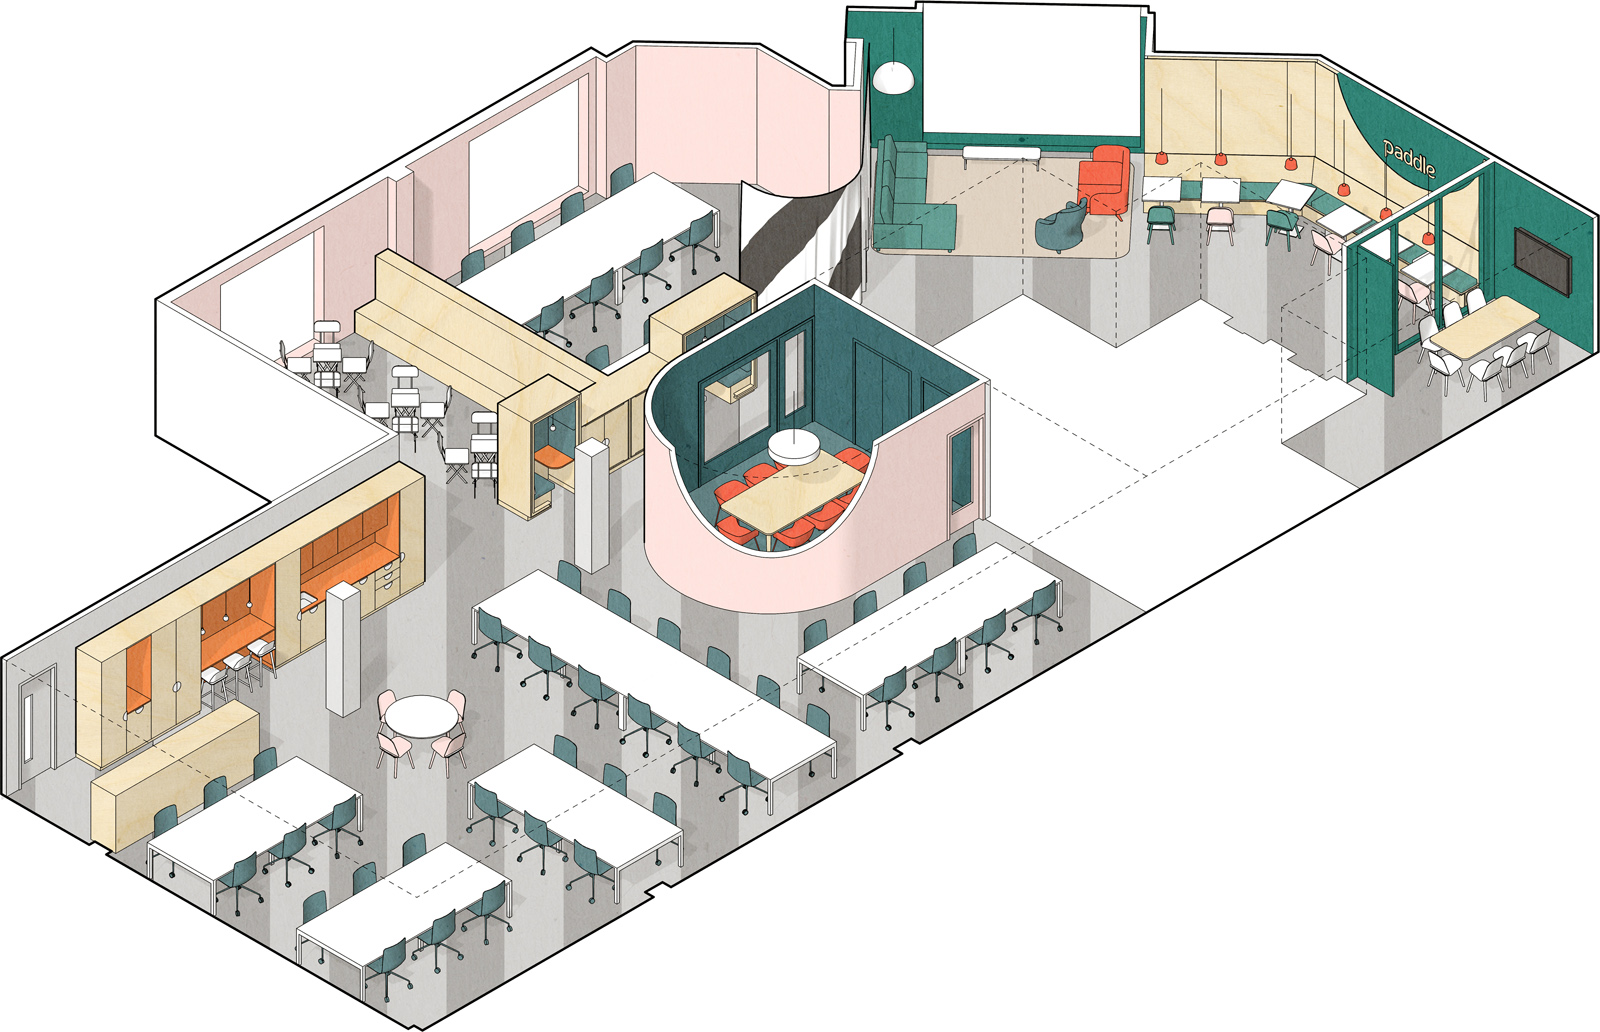 Isometric drawing of the overall space